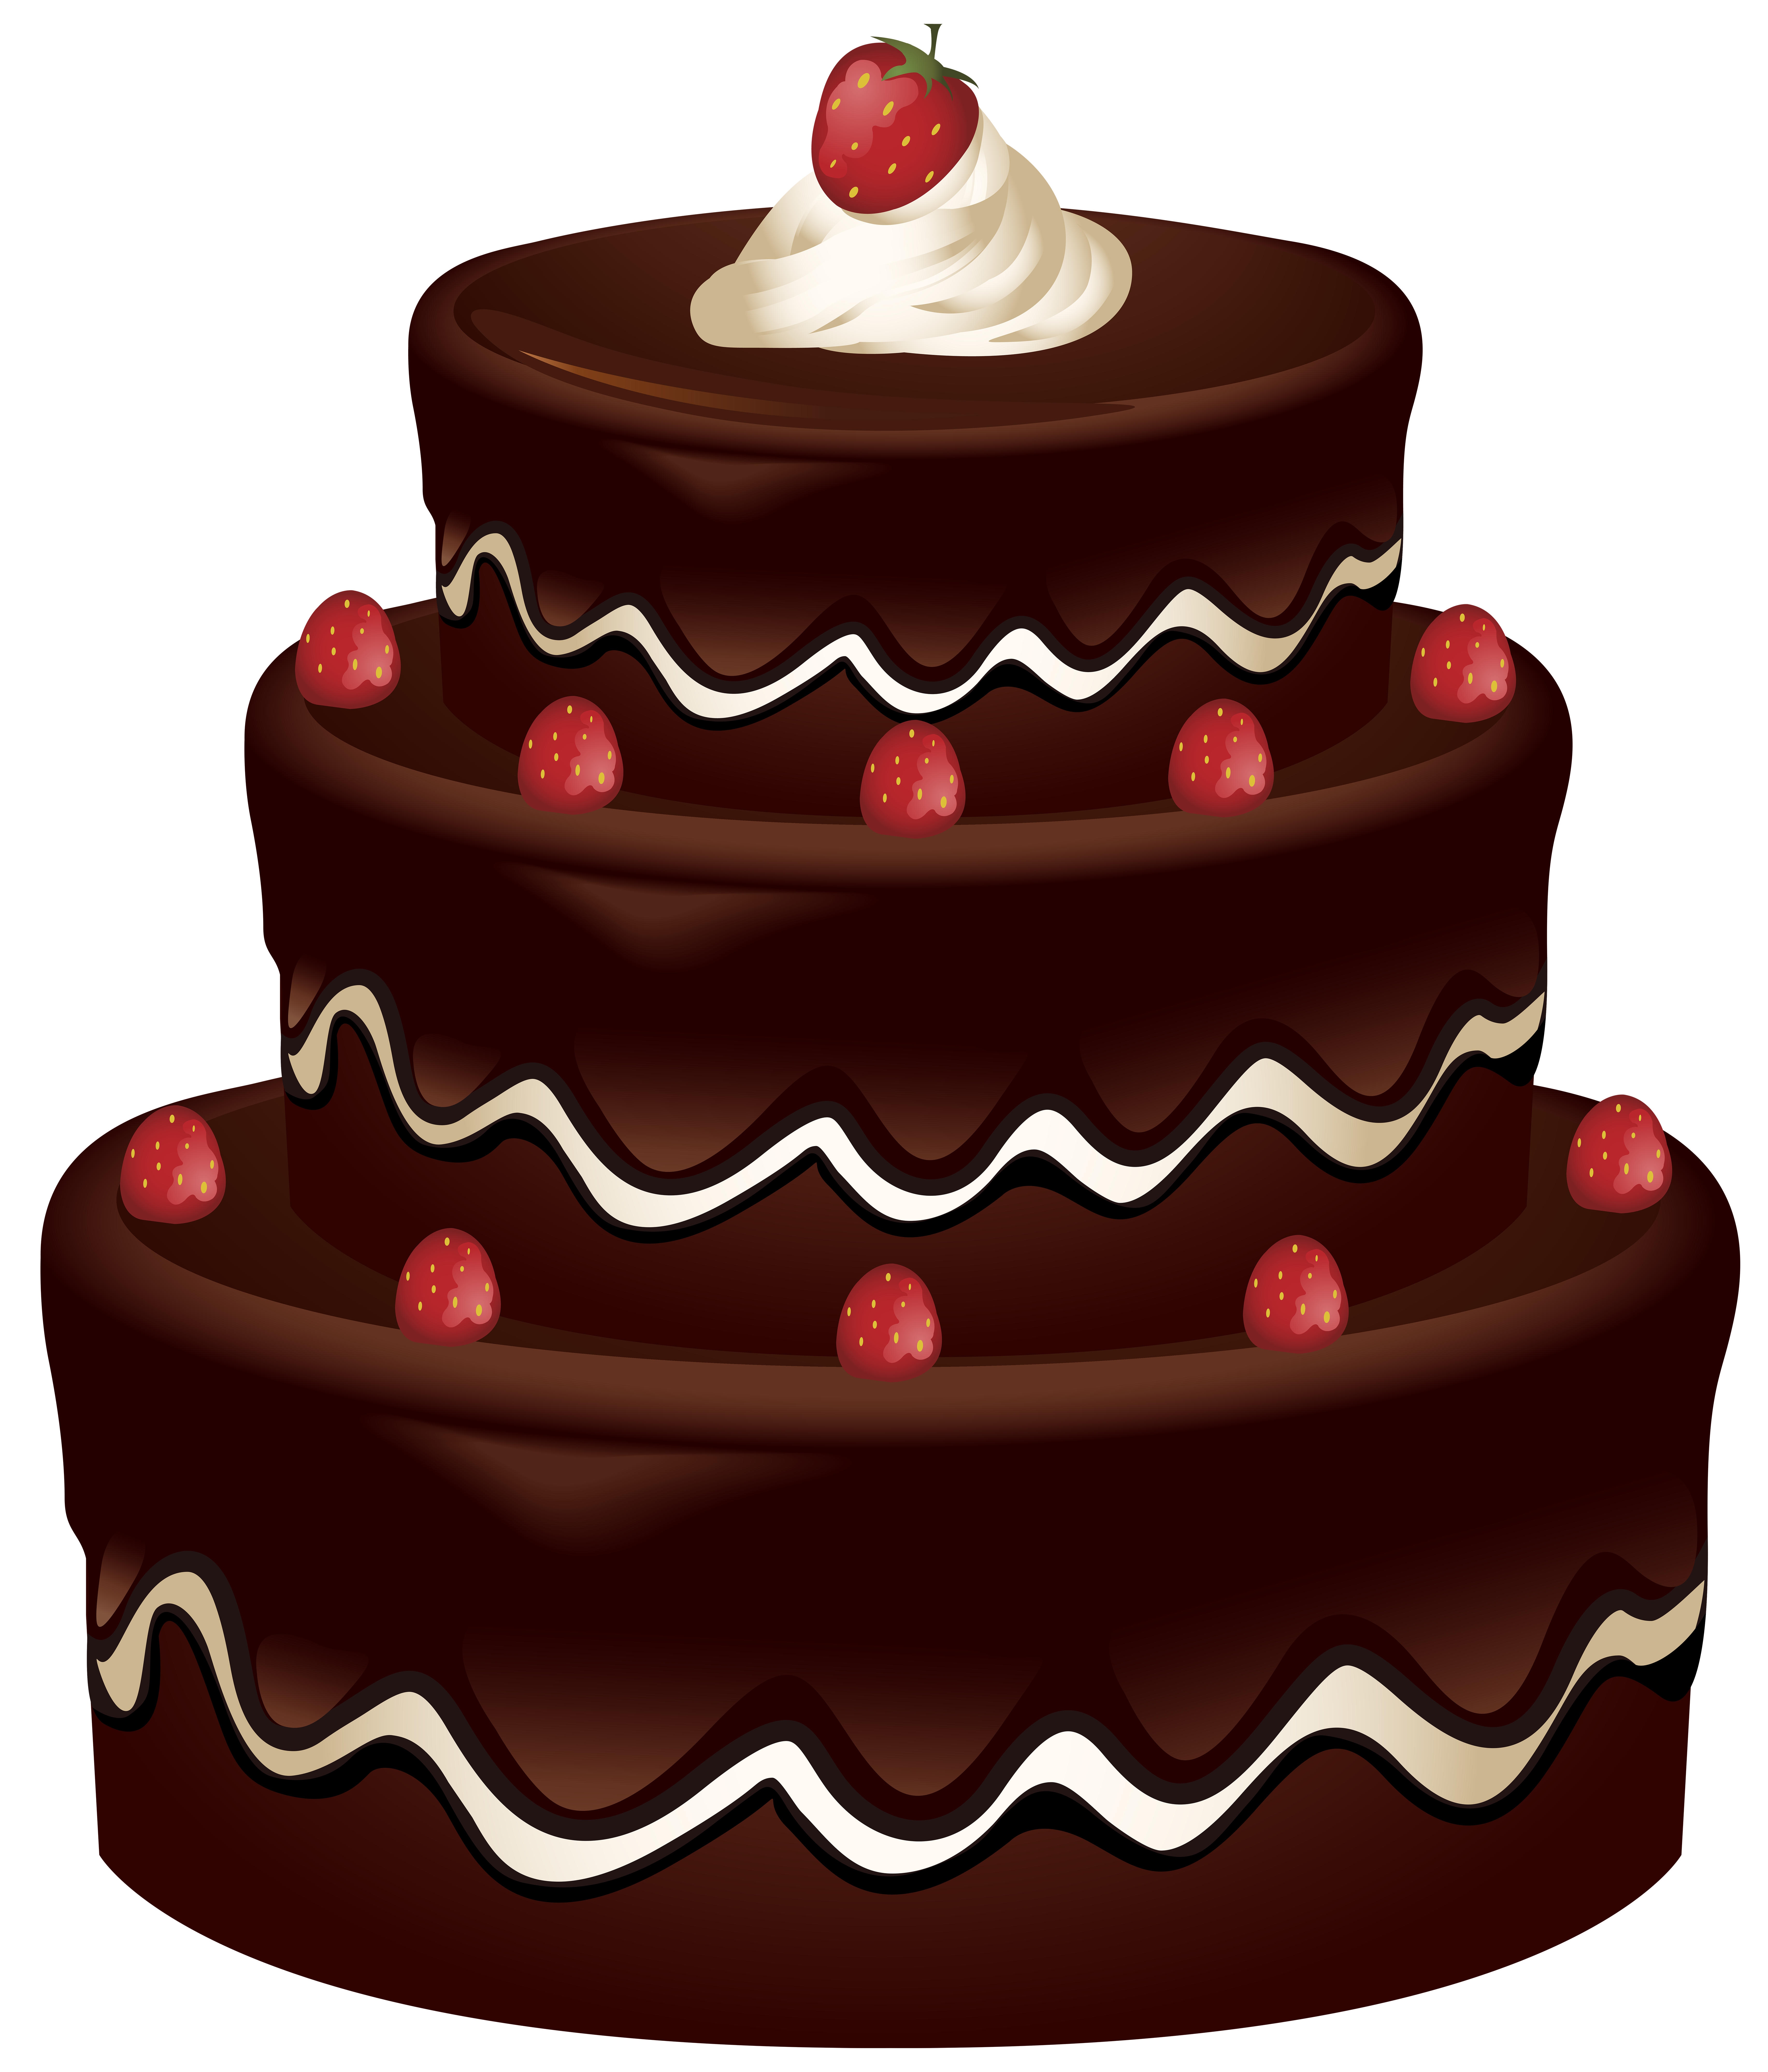 Clip art png image. Cake clipart clip free download